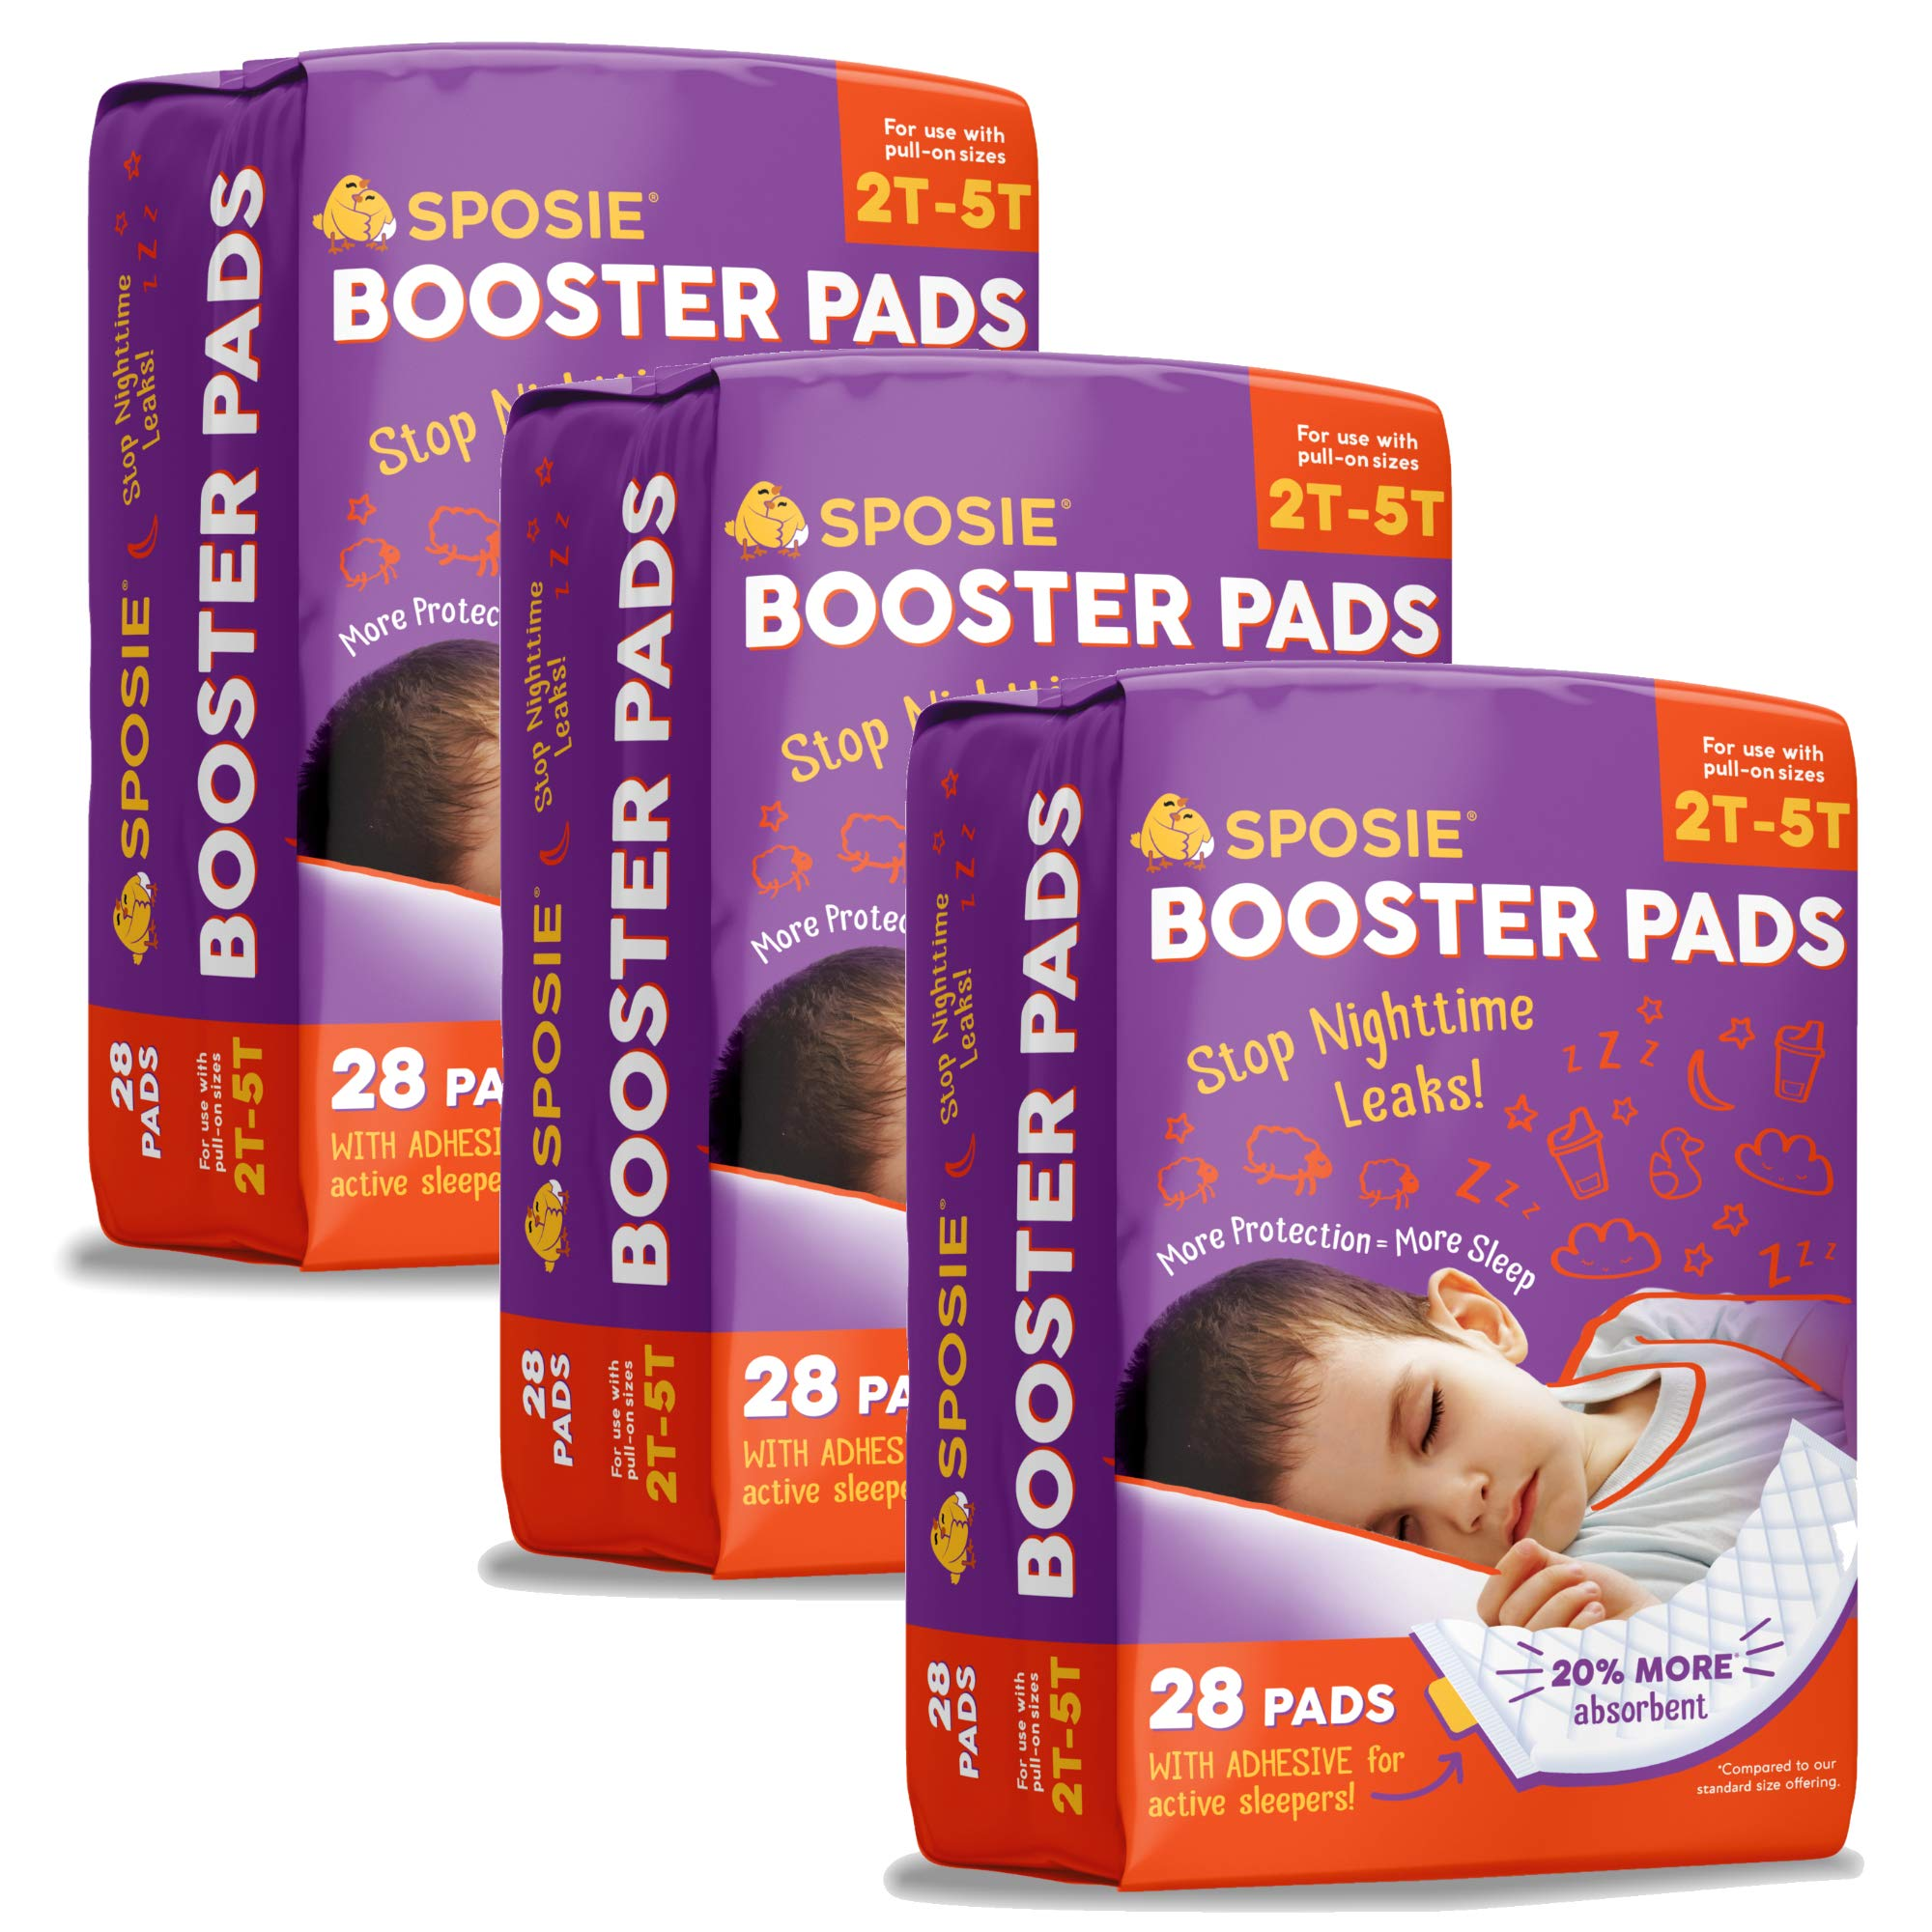 Sposie Adhesive Overnight Baby Diaper Booster Pads/Doublers | 84 ct. 3 Packs of 28 Insert-Pads | Adhesive Strip for Regular & Pull-On Diapers, Disposable, Nighttime Protection for Infant Boys & Girls by Select Kids